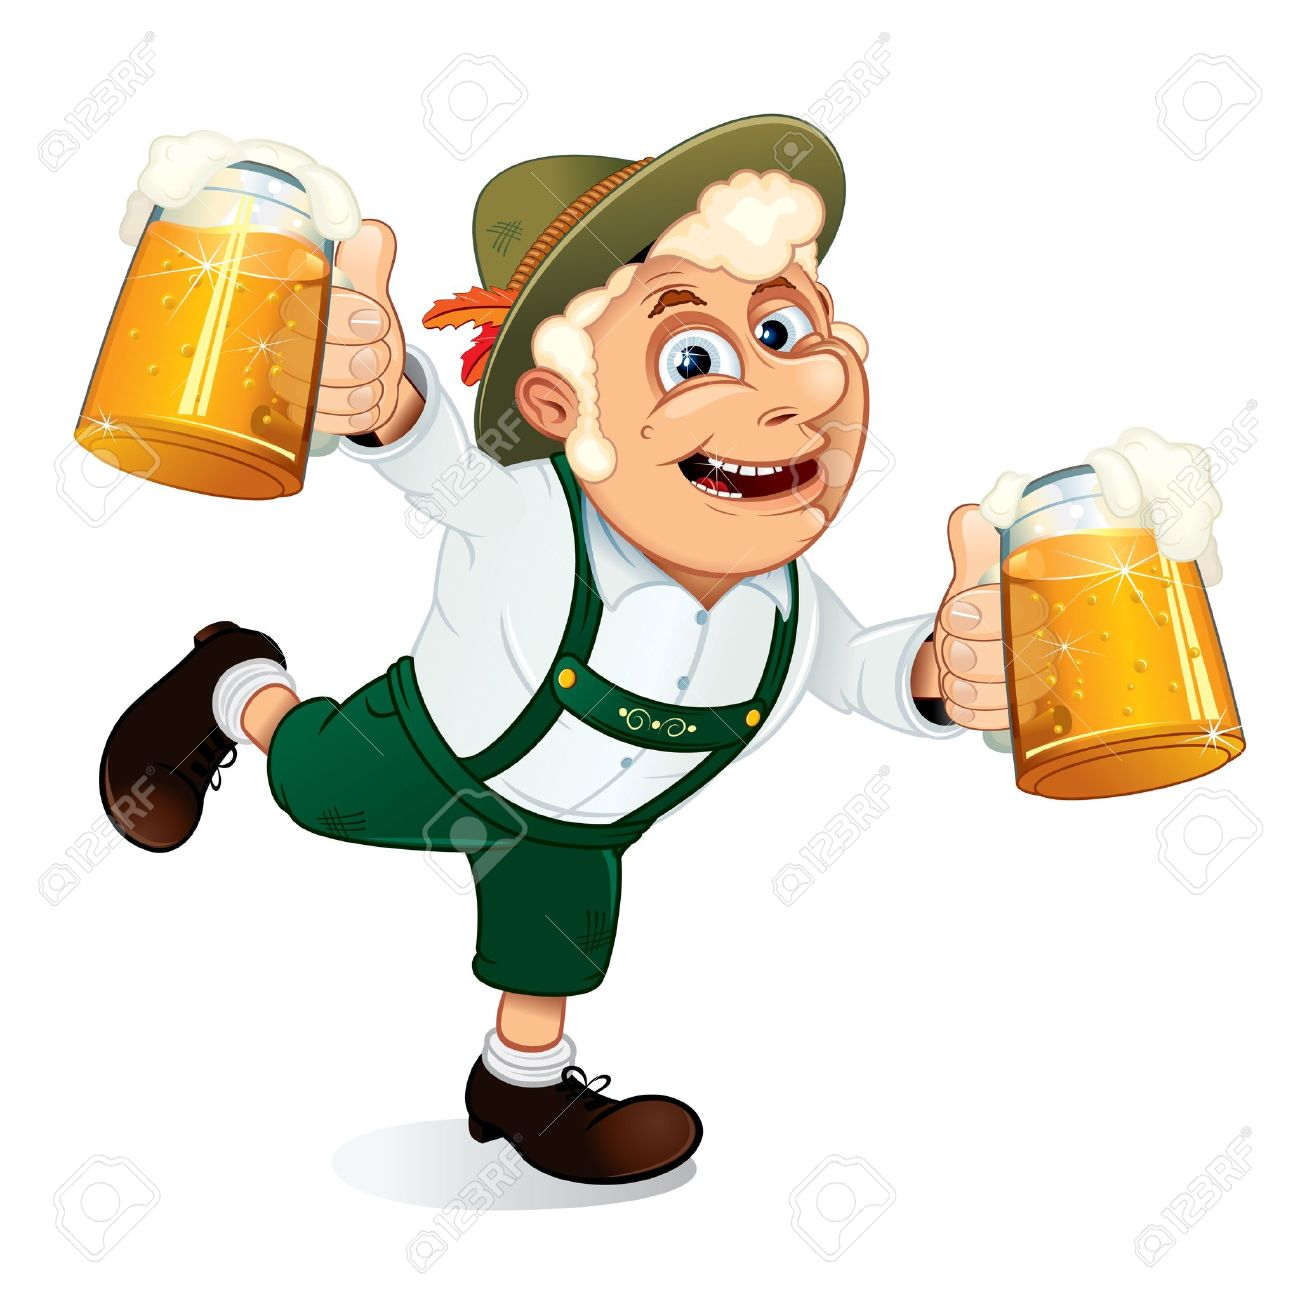 Hilarious Drunk Guy with mugs of beer at hands on a Oktoberfest festival, vector illustration Stock Vector - 10301482